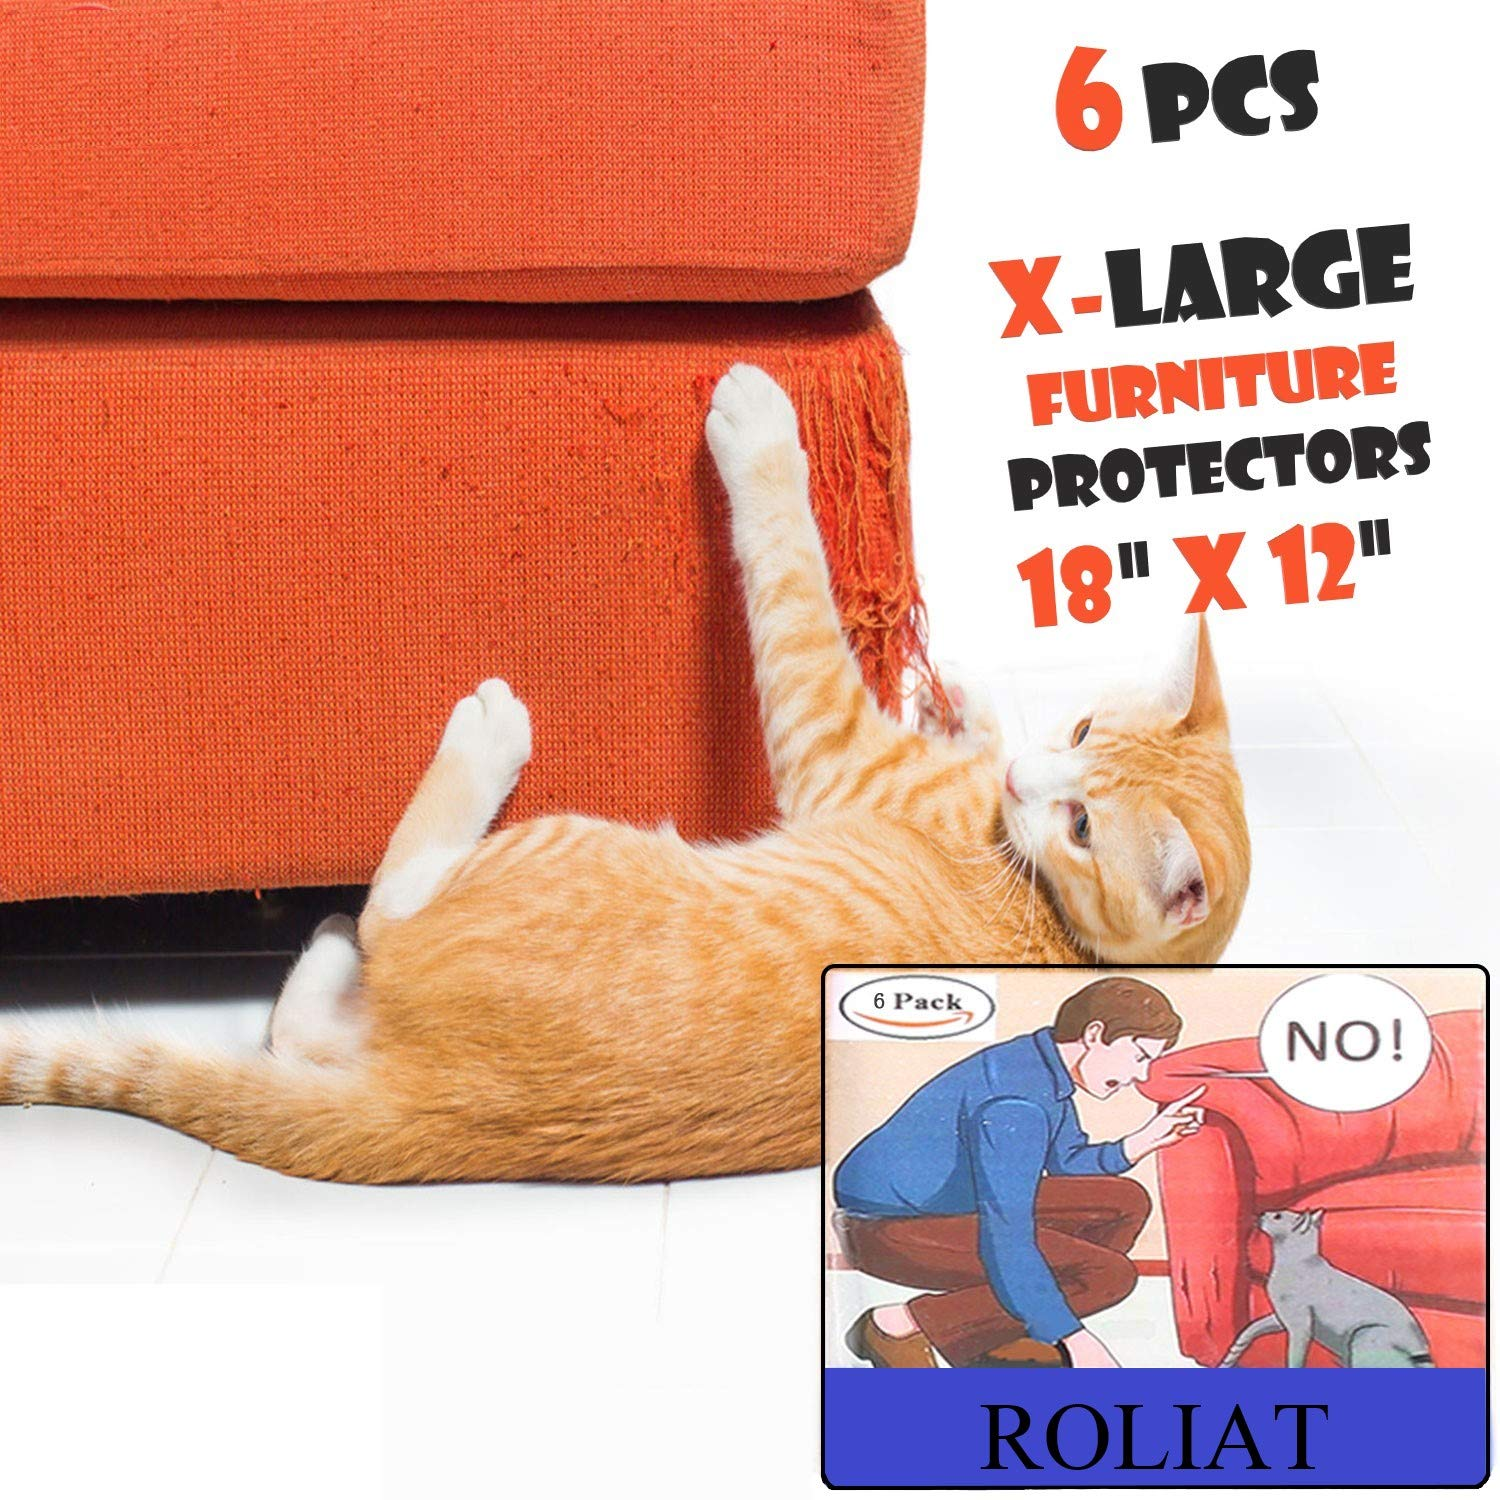 ROLIAT X-Large Cat Scratch Furniture Protectors(6 Packs), Stop My Cat from Scratching Sofa, Cat Scratch Deterrent Self-Adhesive Pads, Cat-Proof Couch Guard, Door Shield